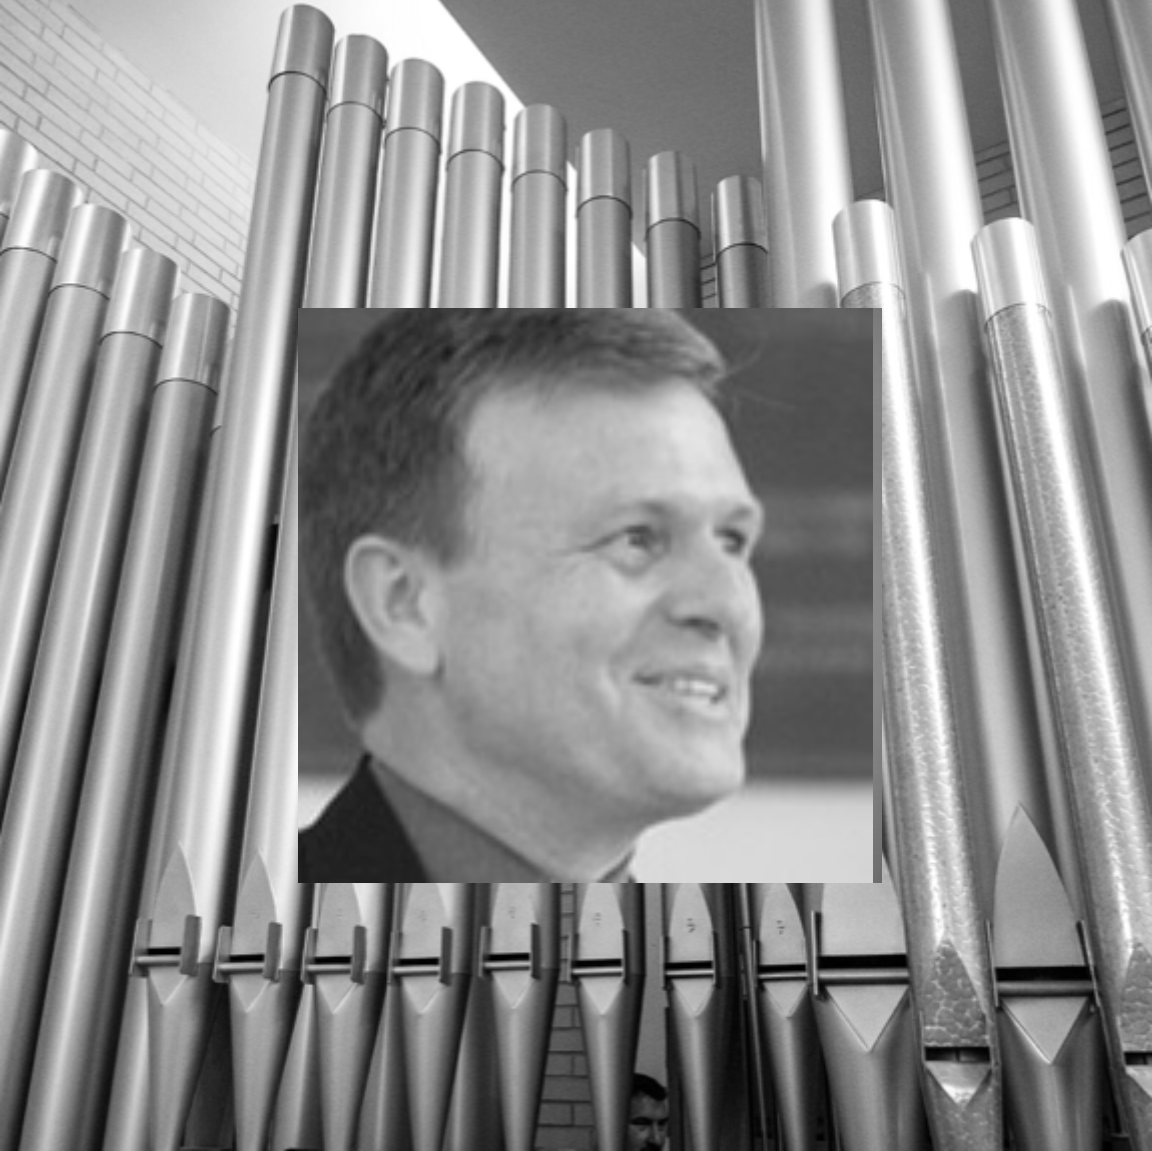 ty woodward (inset); first presbyterian church organ pipes (background)